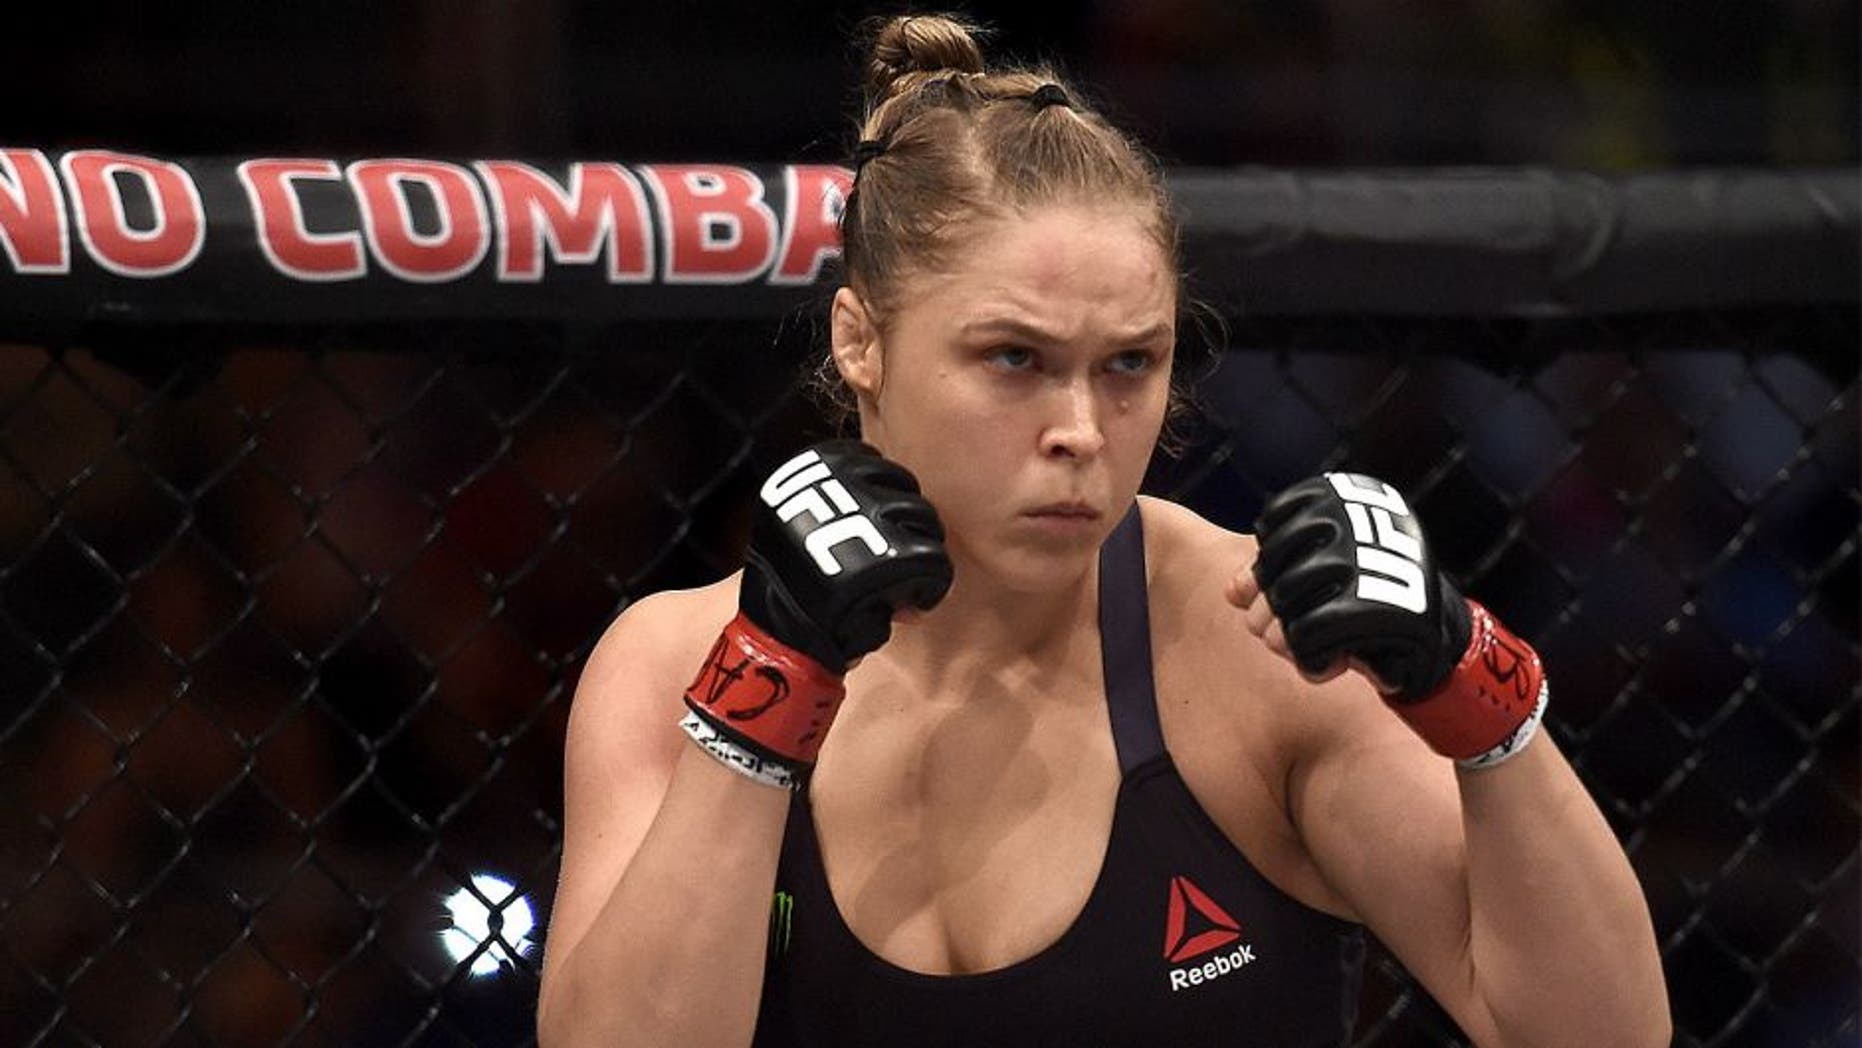 RIO DE JANEIRO, BRAZIL - AUGUST 01: Ronda Rousey of the United States looks on prior to her bantamweight title fight Bethe Correia of Brazil during the UFC 190 Rousey v Correia at HSBC Arena on August 1, 2015 in Rio de Janeiro, Brazil. (Photo by Buda Mendes/Zuffa LLC/Zuffa LLC via Getty Images)